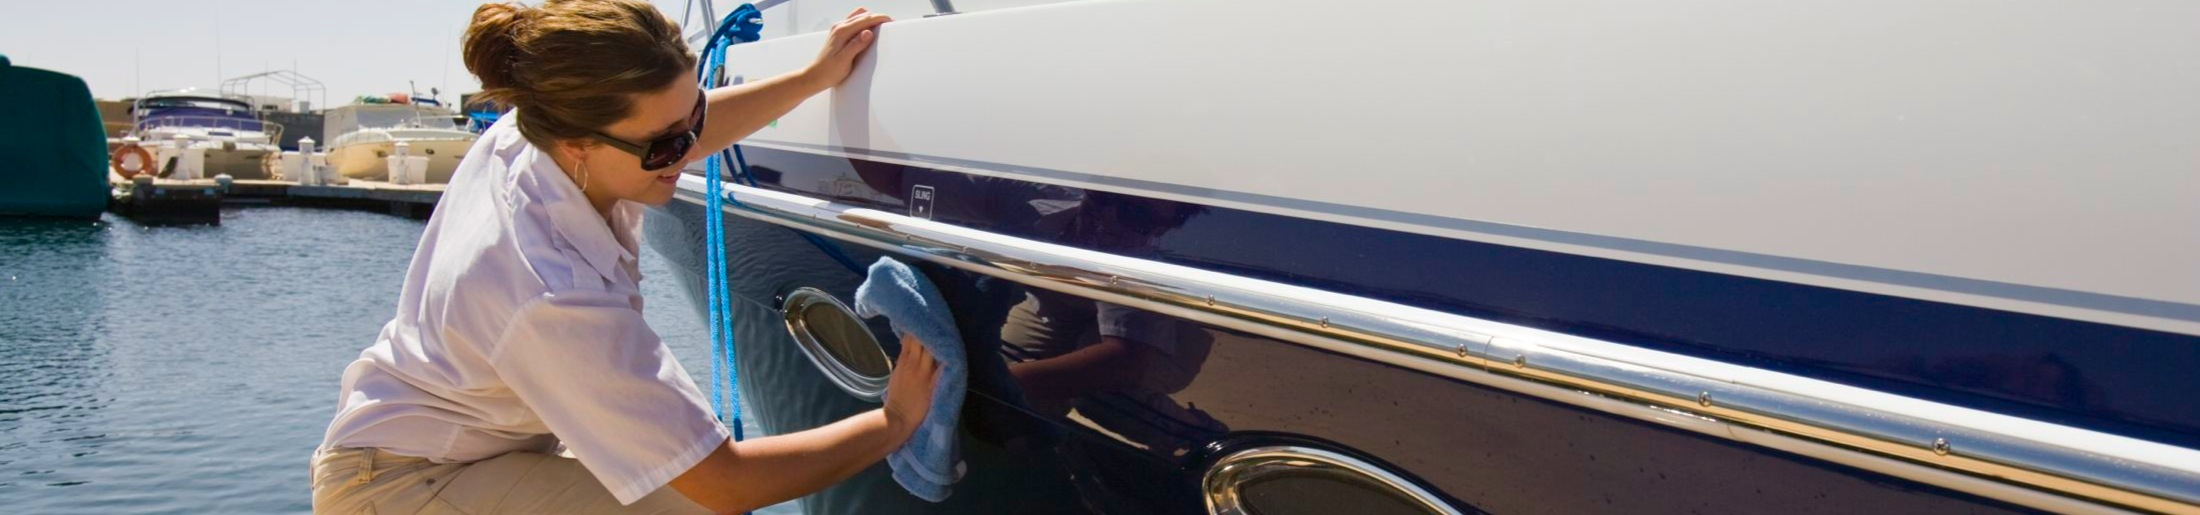 boat-cleaning-service-at-lake-powell-marinas-2200x515